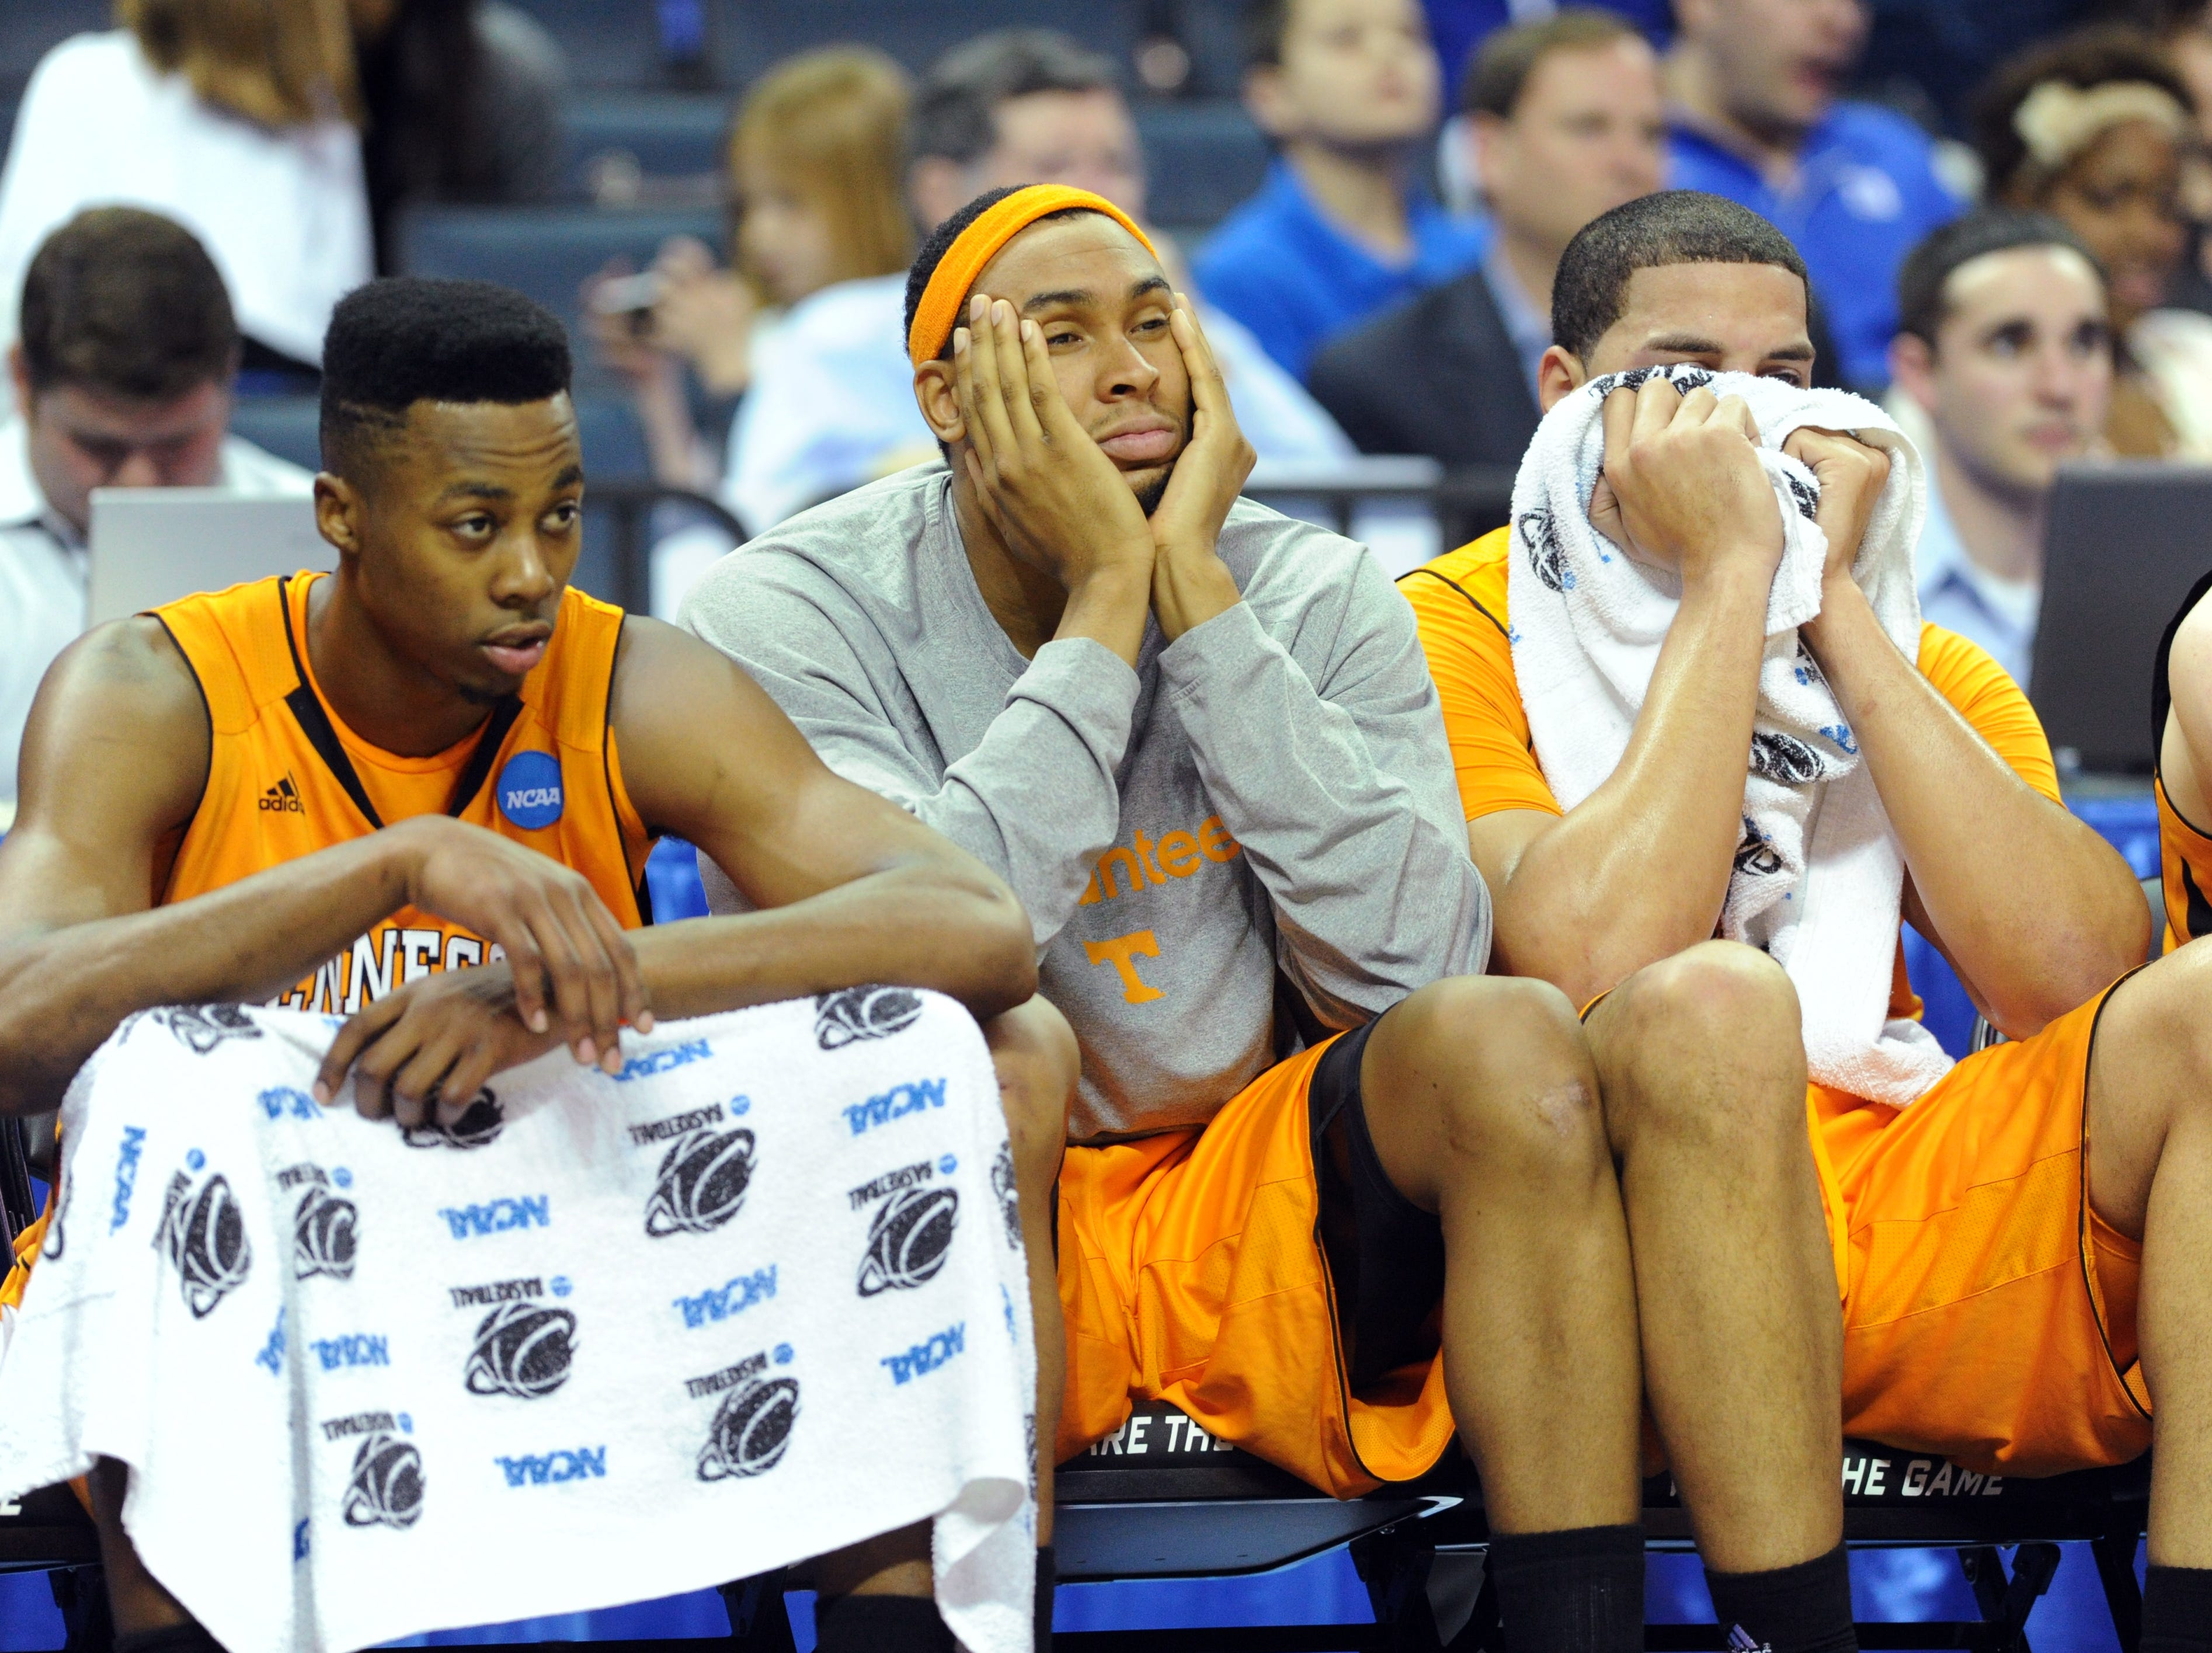 Tennessee's Scoty Hopson, John Fields and Brian Williams, left to right, look on as the Vols play the Michigan Wolverines during the second round of the NCAA Tournament at Time Warner Cable Arena in Charlotte, N.C. Friday, March 18, 2011.  The Vols lost 75-45 to the Wolverines knocking them out of the tournament.